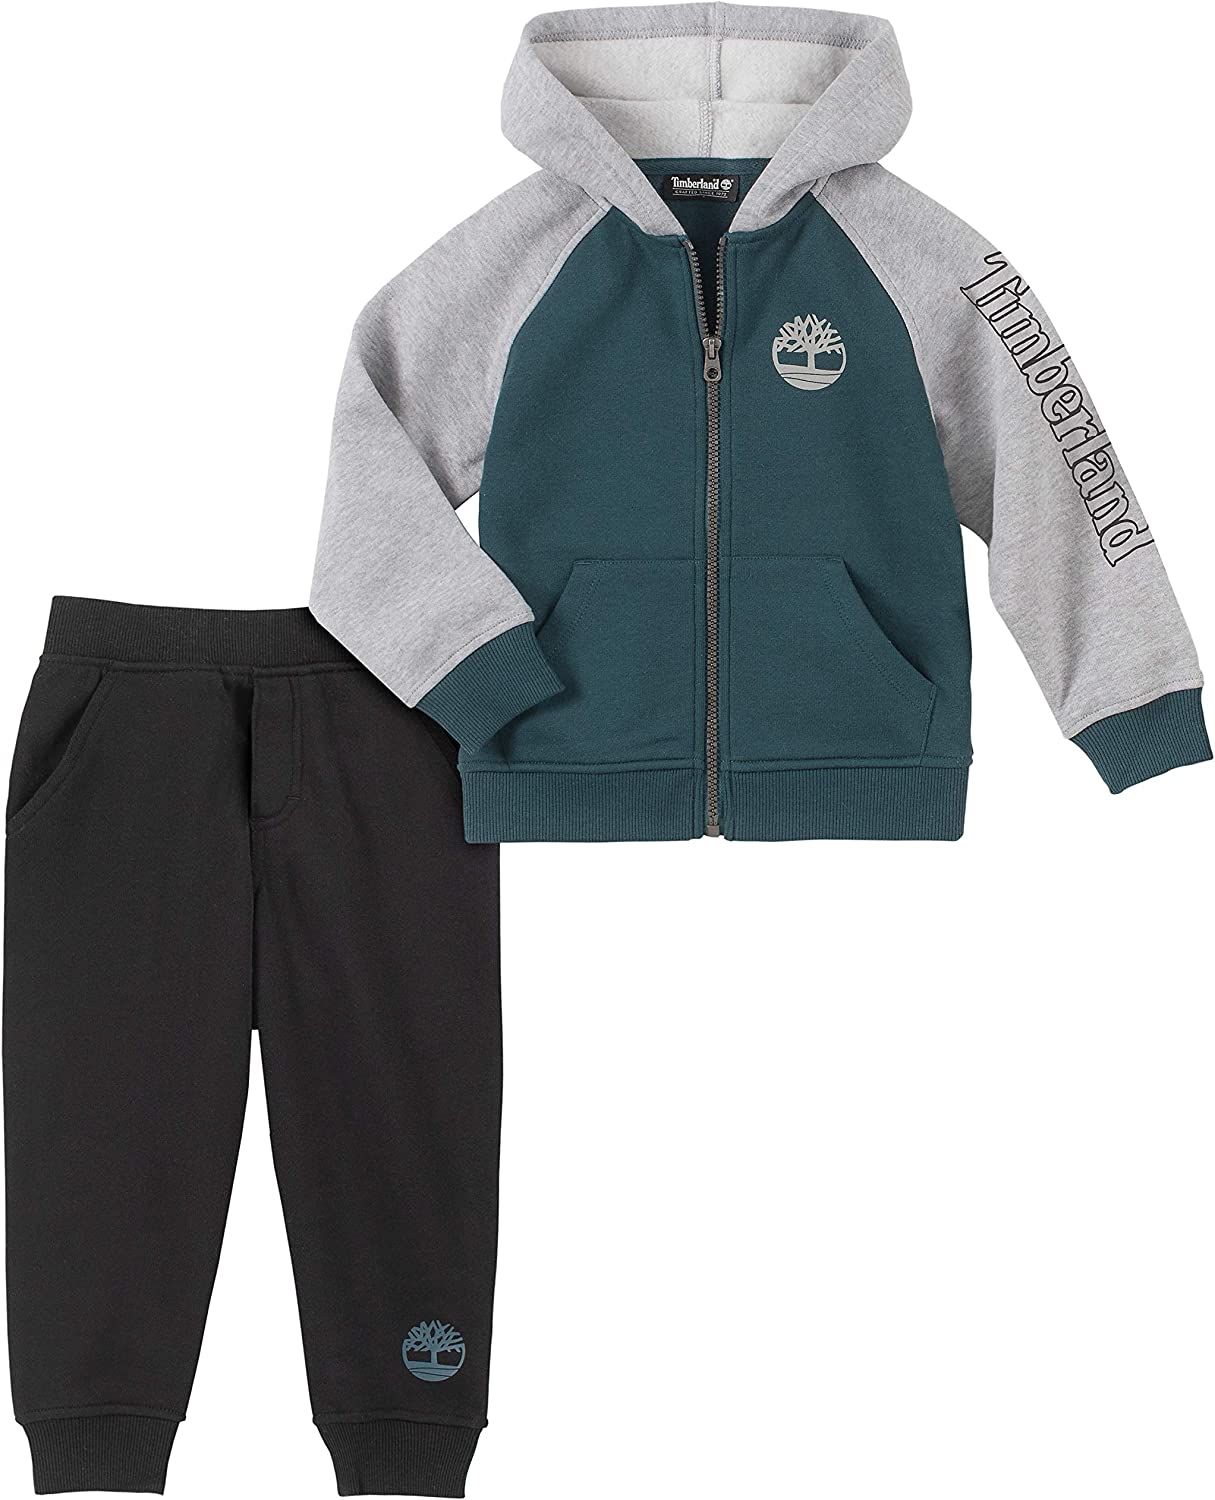 Timberland Toddler Boys 2 Pieces Sweater Jog Set